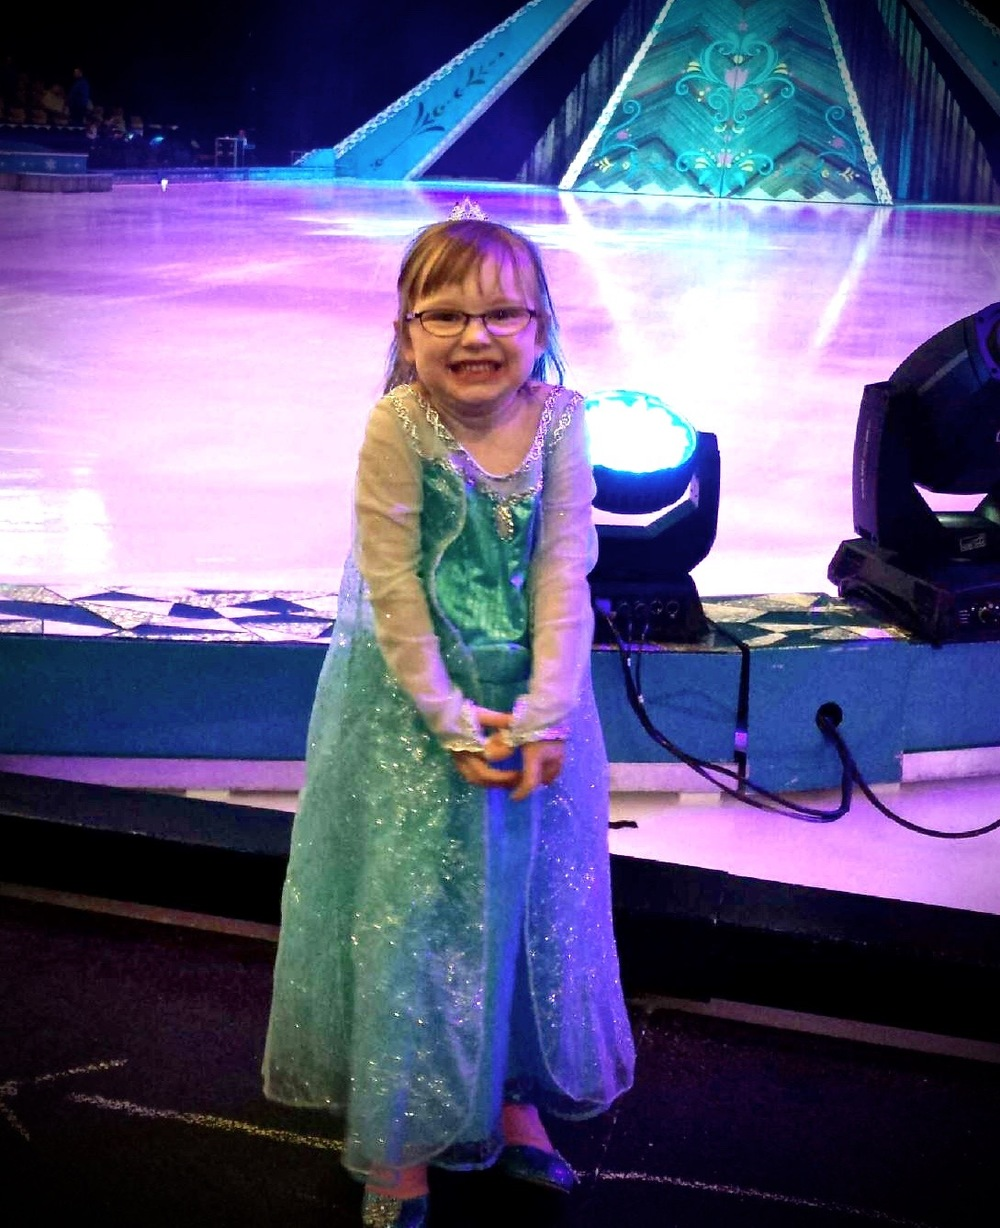 No homemade costumes this time, some occasions call for the real thing. My daughter dressed as Elsa for Disney on Ice